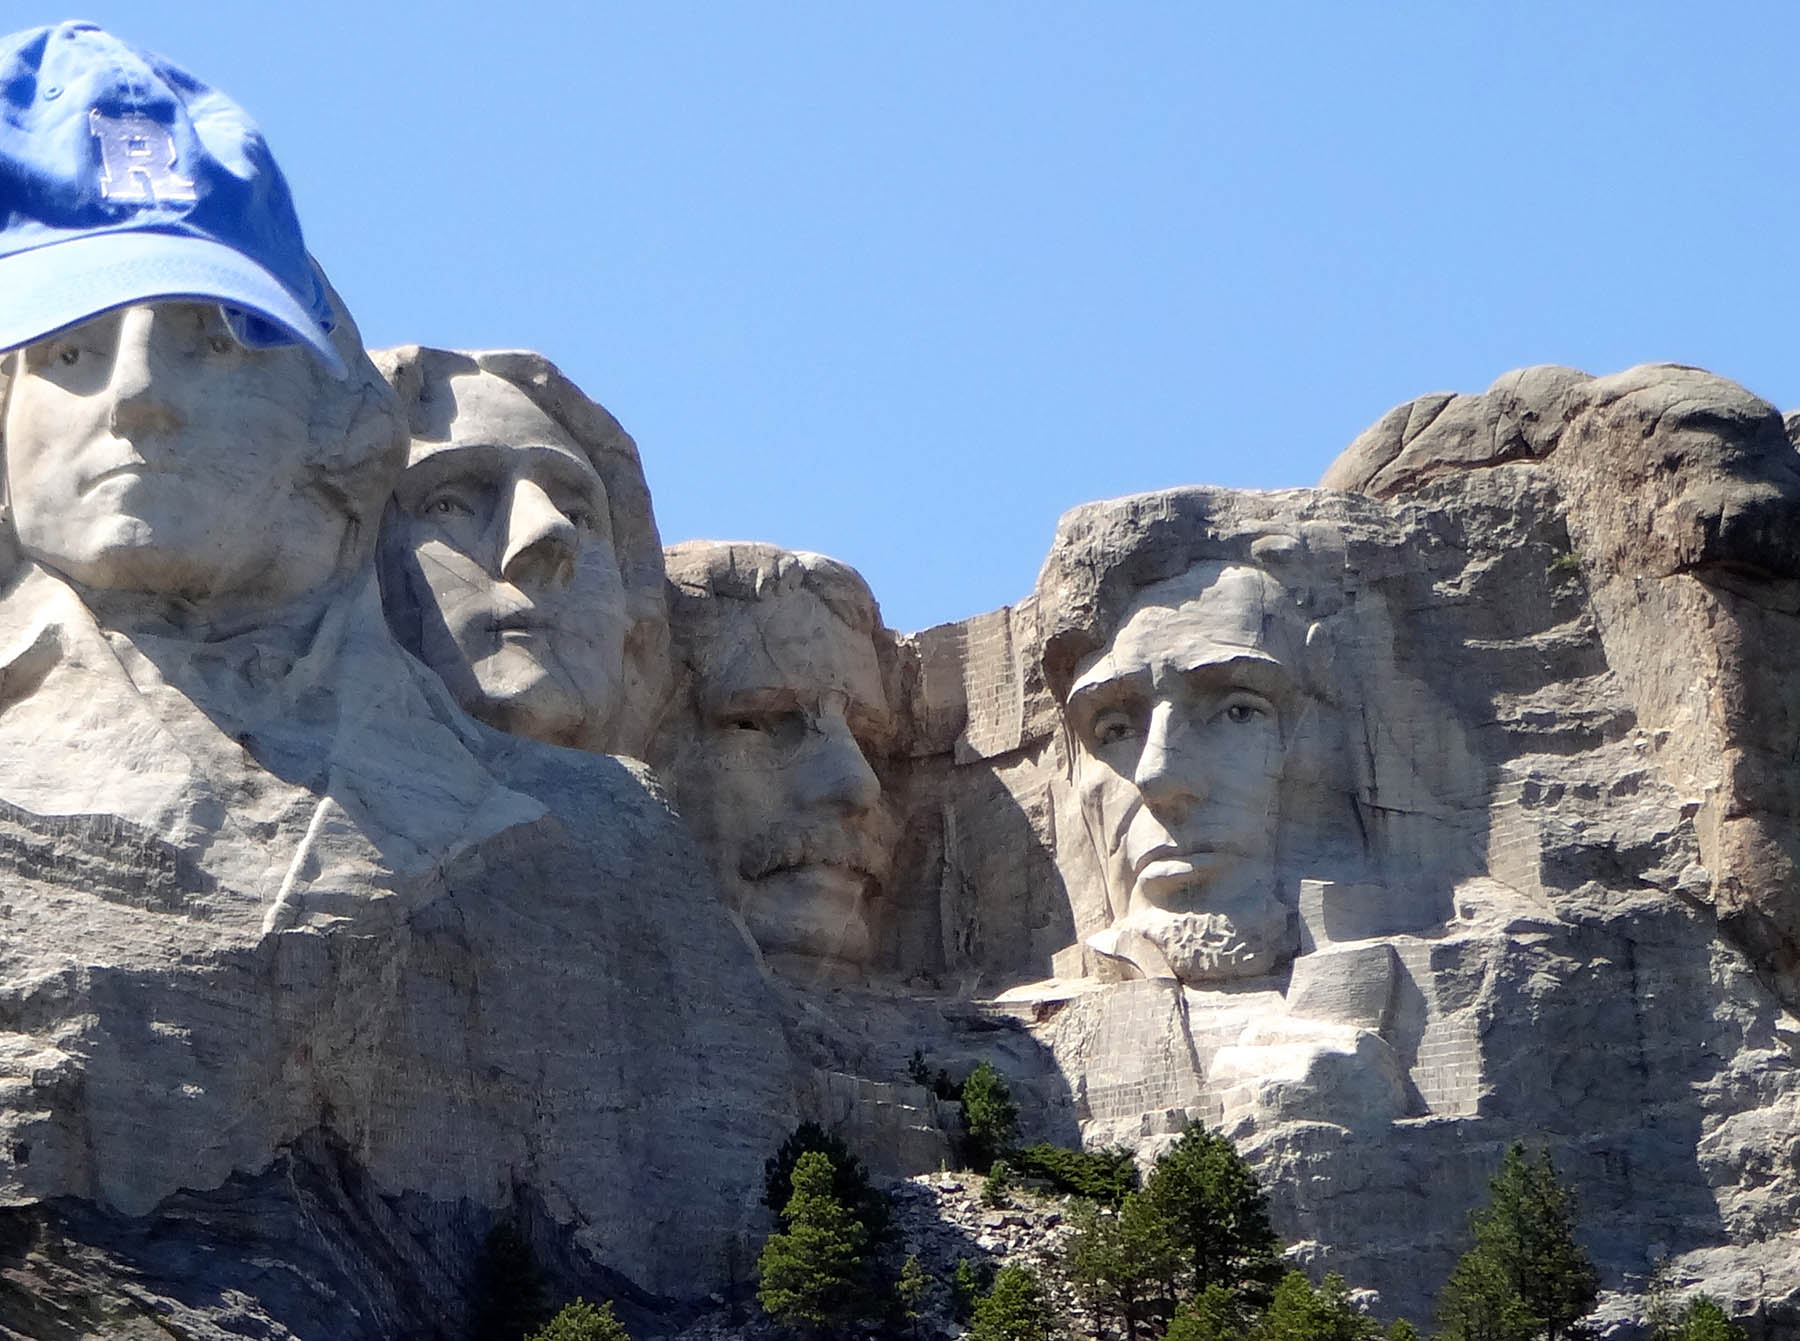 George Washington wearing a Rochester hat in Mt. Rushmore